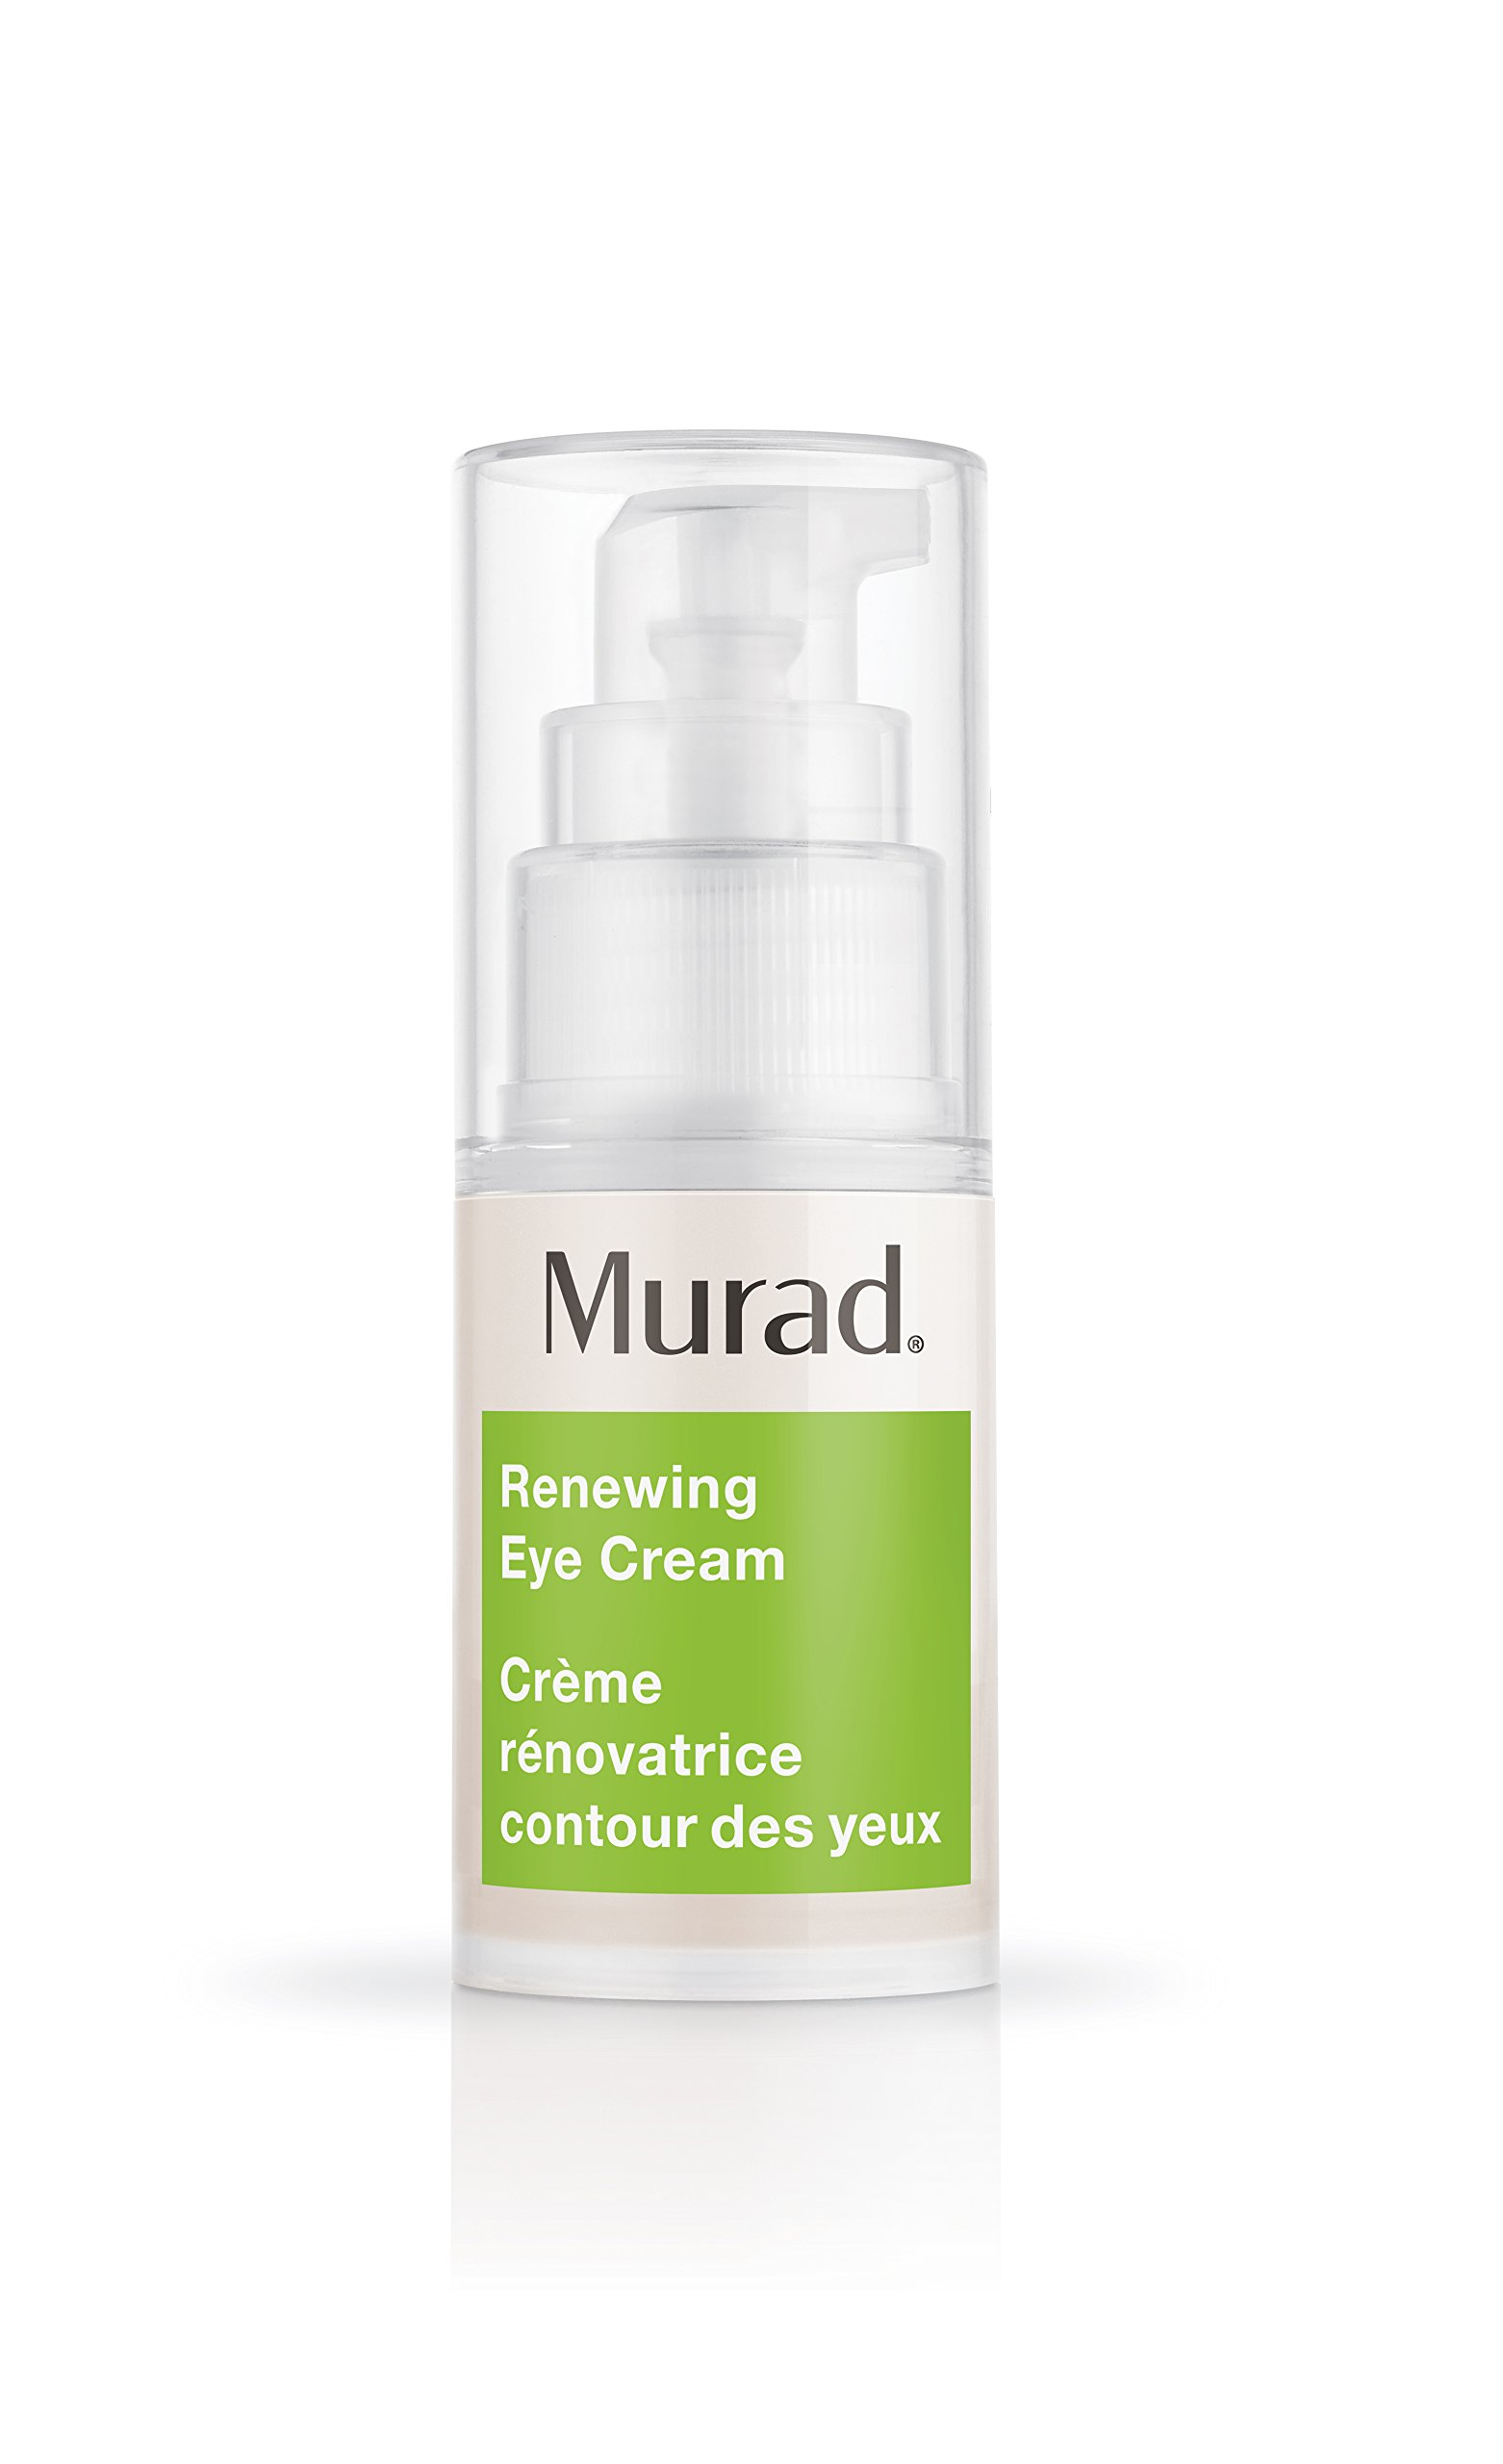 Murad Resurgence Renewing Eye Cream - Step 2 Treat/Repair (0.5 fl oz), A Multi-Action Anti Aging Cream with Eye Brightening Complex, Visibly Minimizes Wrinkles with Advanced Peptides and Retinol